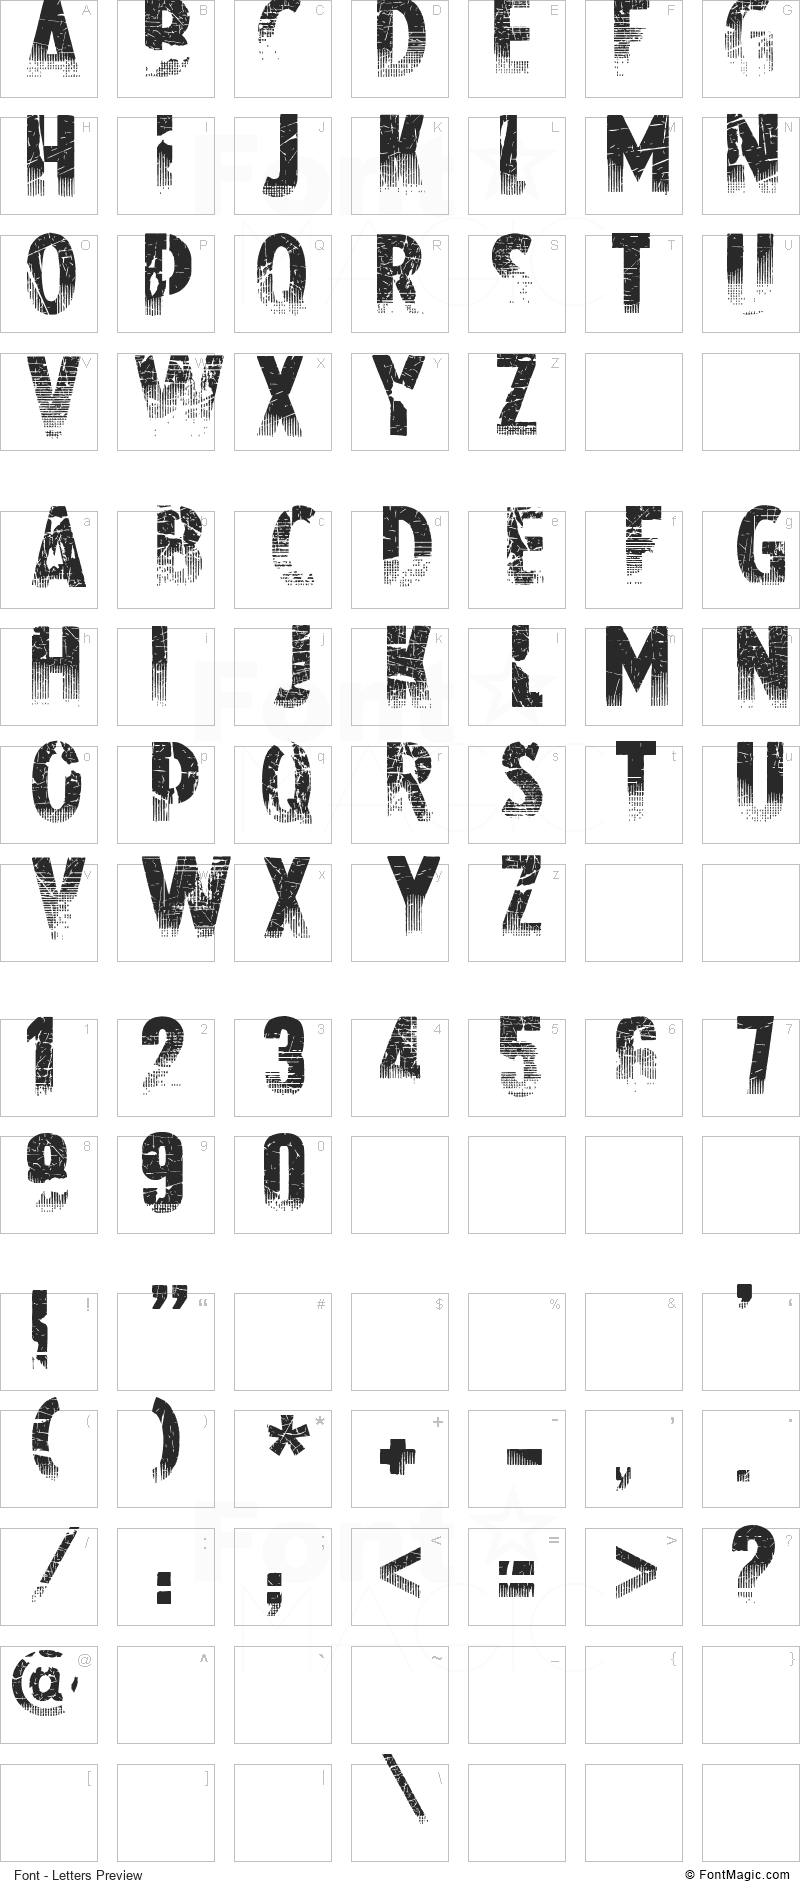 Nowharehouse Font - All Latters Preview Chart